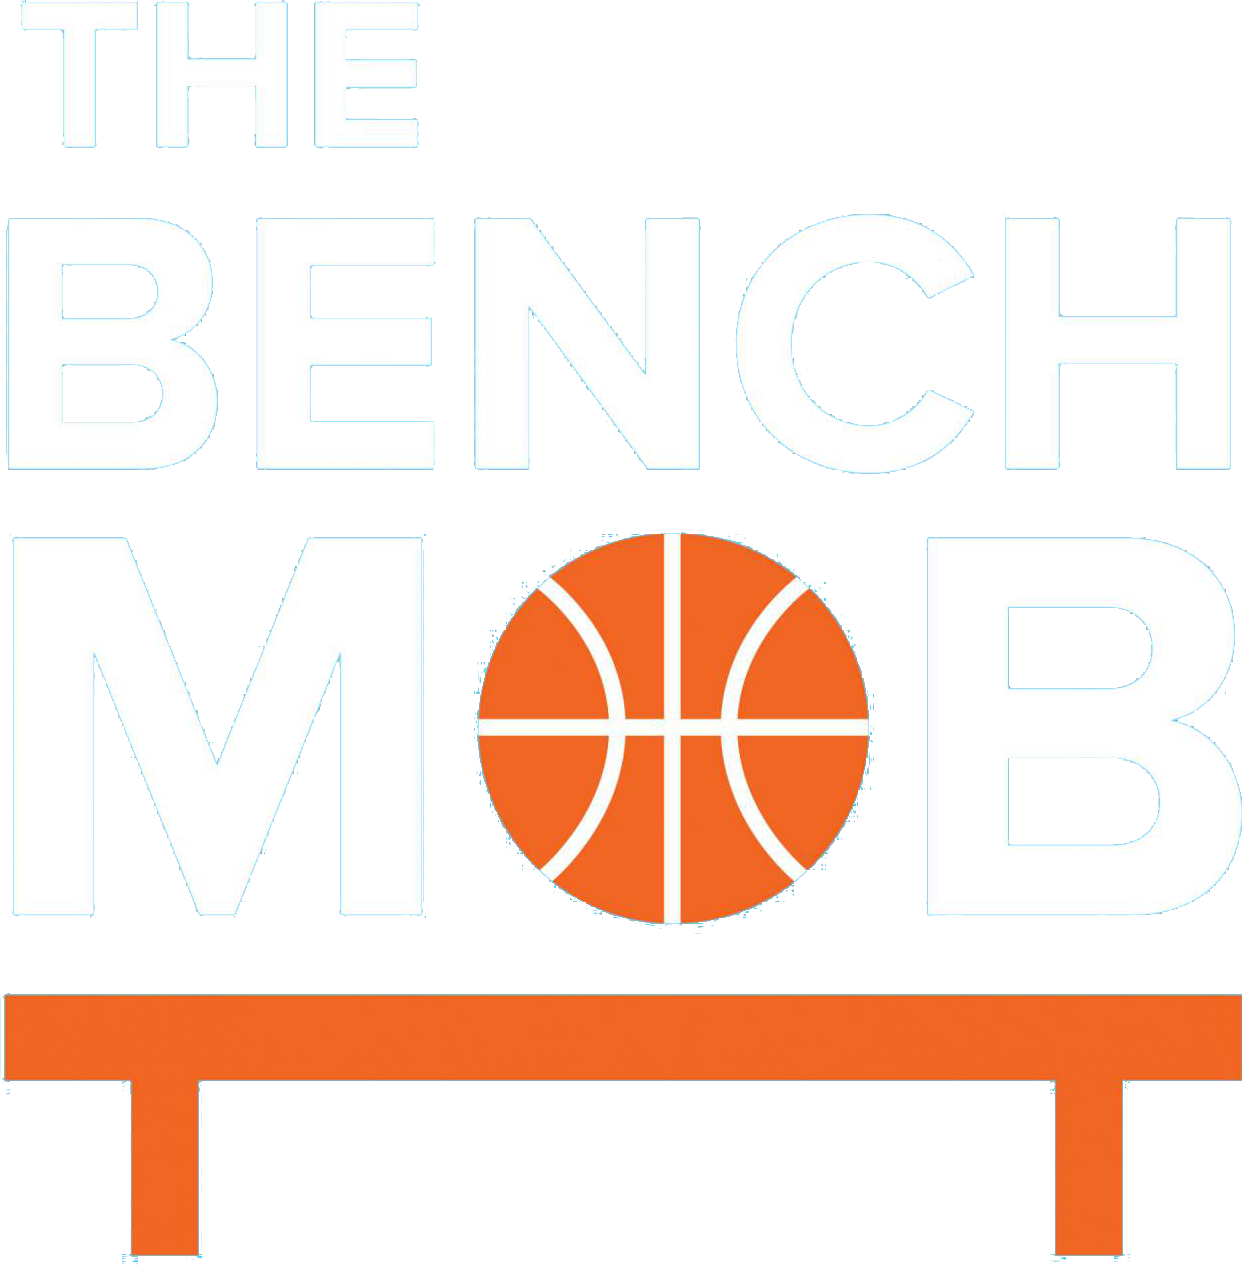 Bench sport frames illustrations. Basketball benched clipart